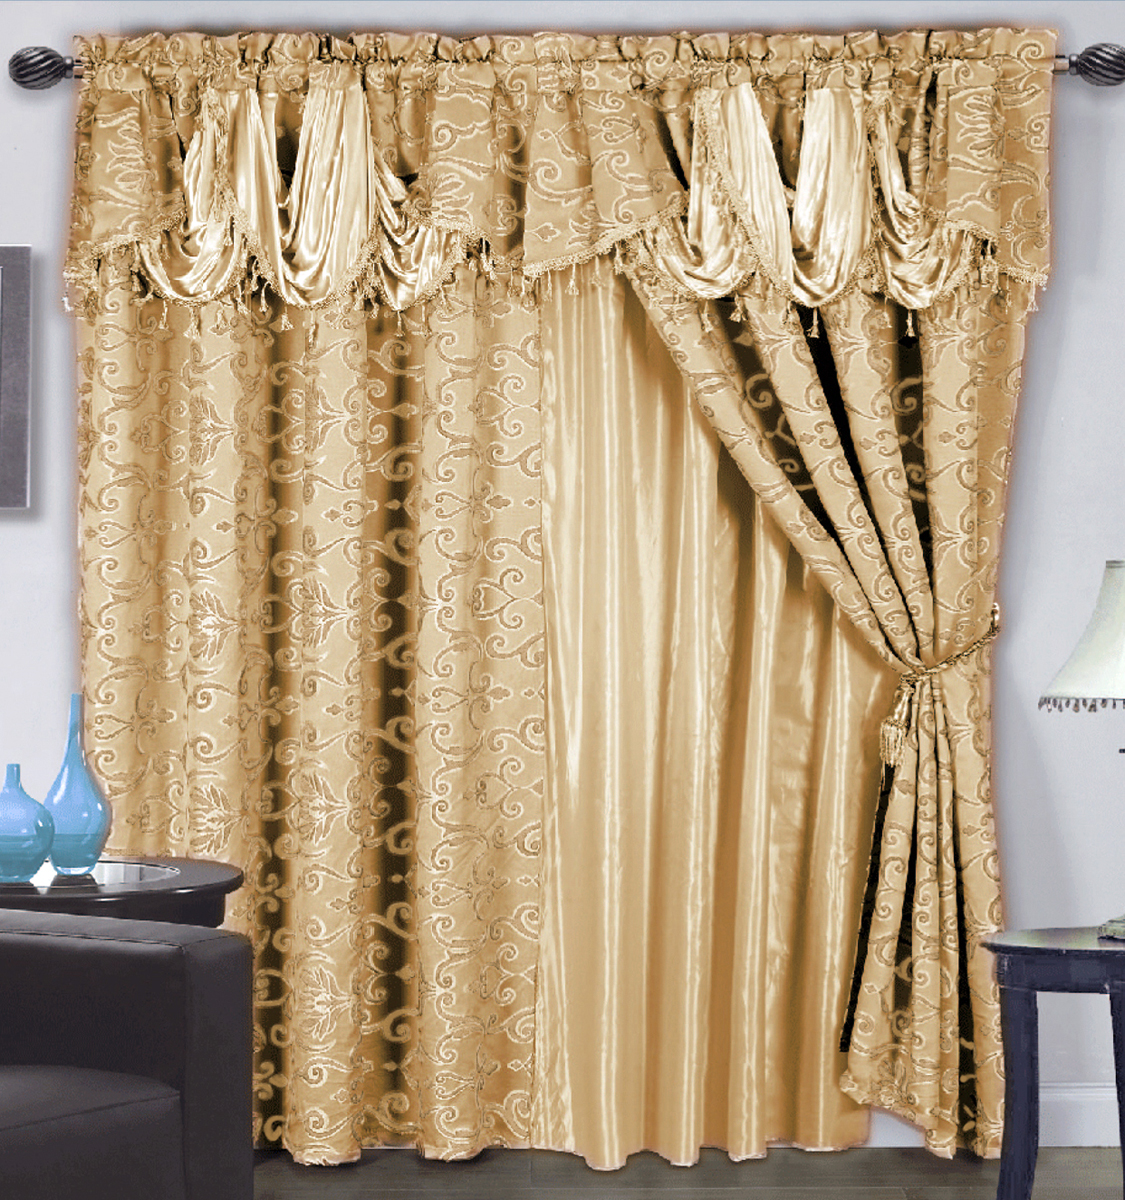 4 Pc Luxurious Satin Jacquard Damask Curtain Set Waterfall Valance Linings Gold Ebay